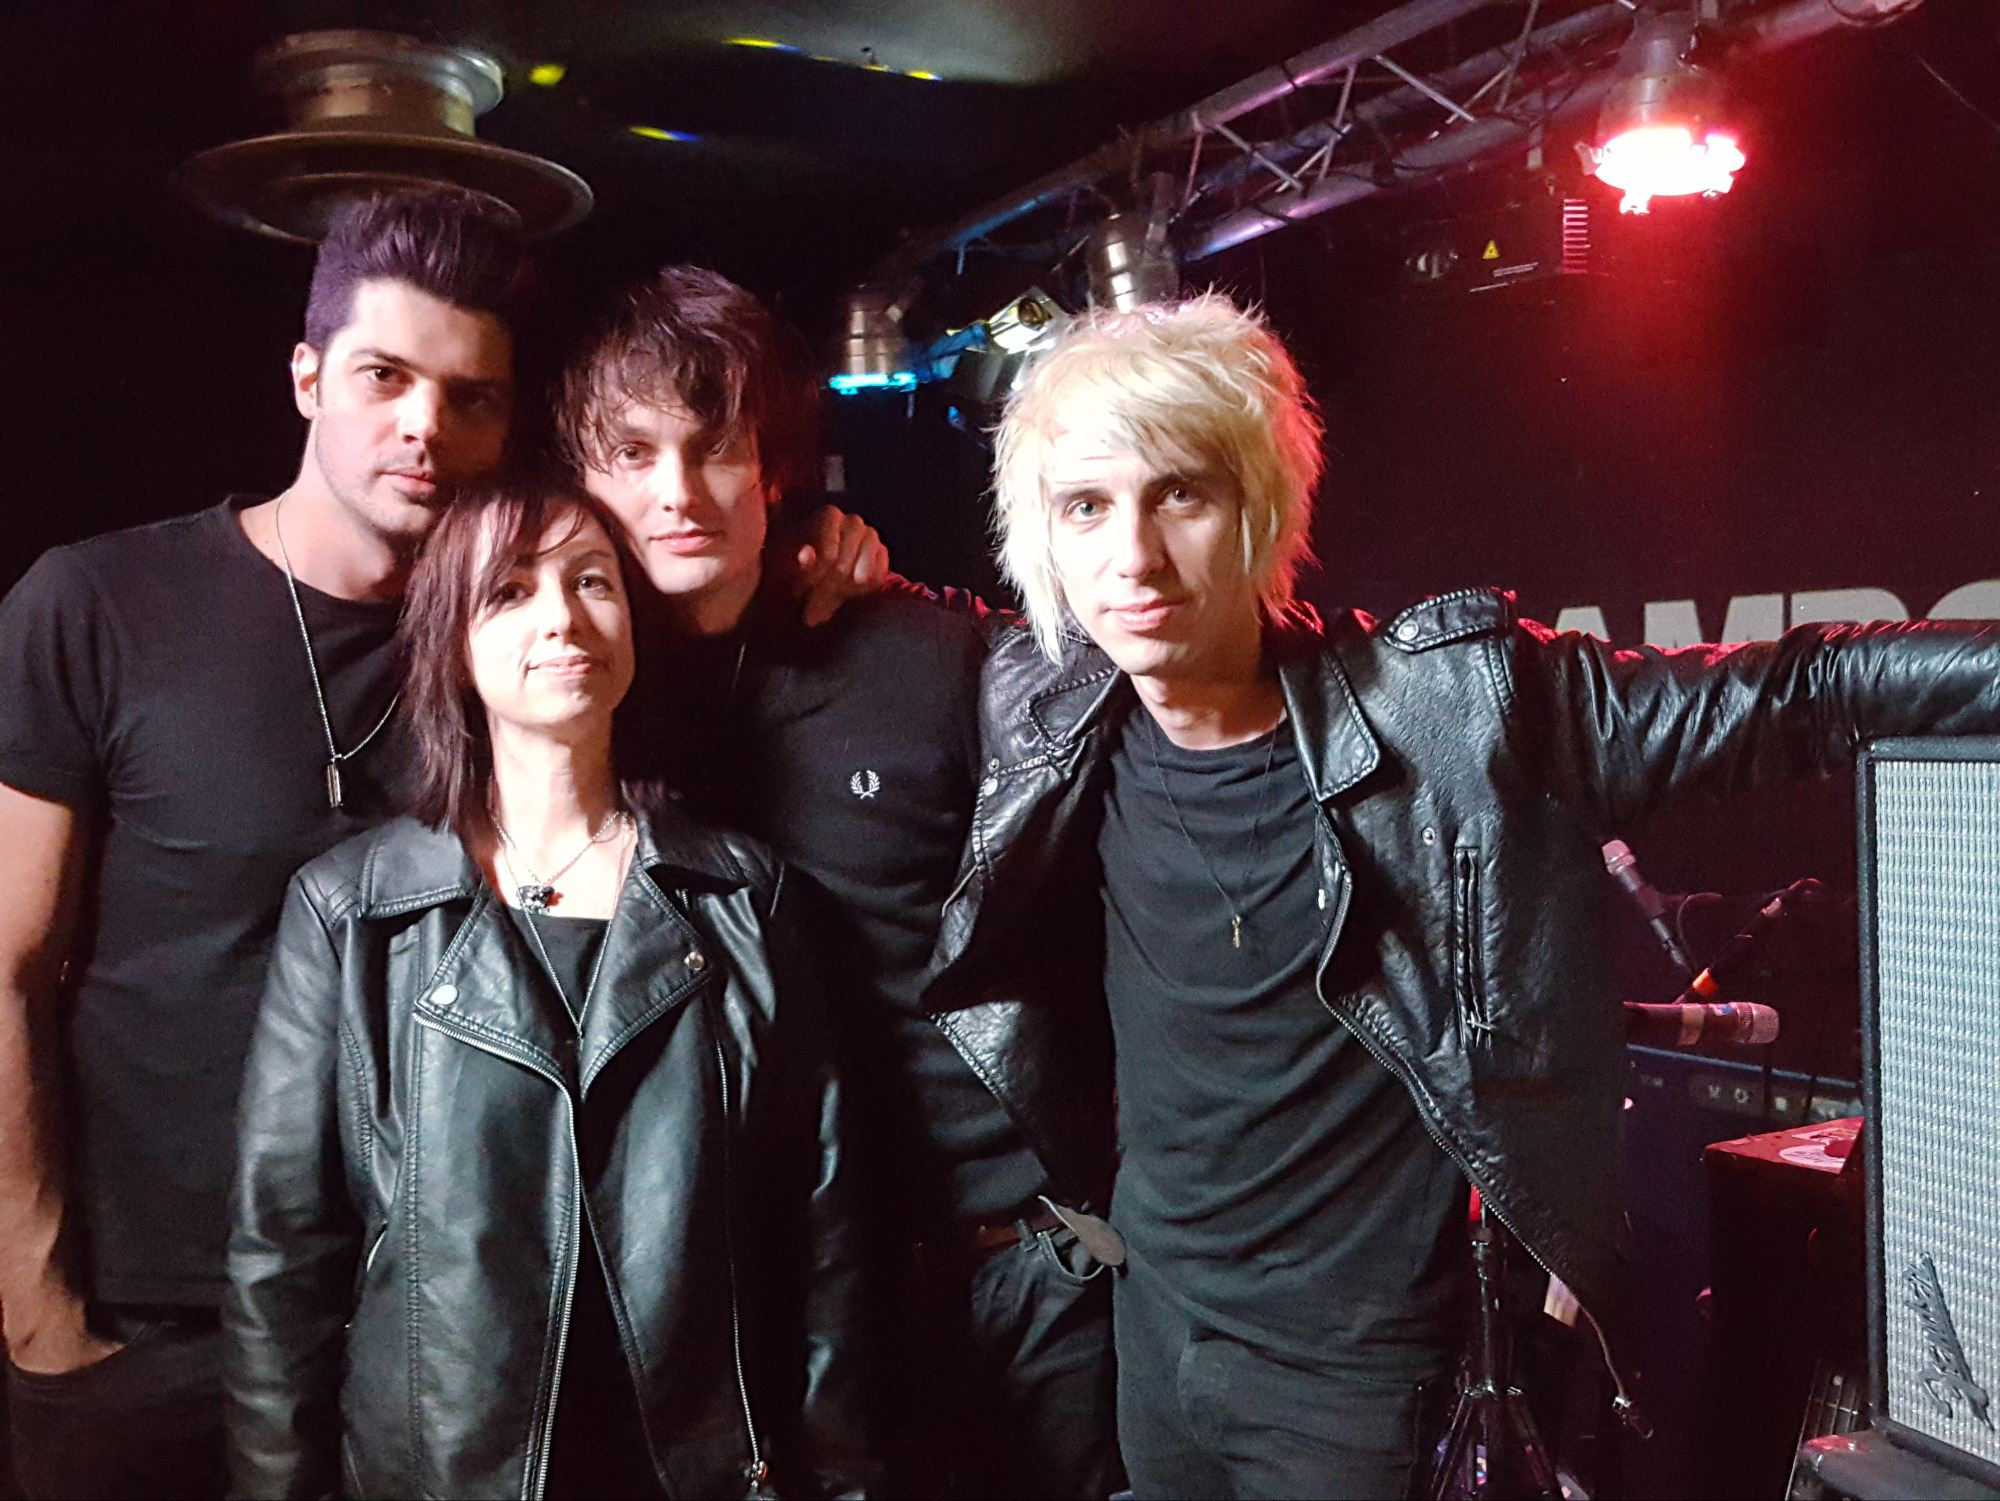 Trampolene & Jane Pirate Treasures